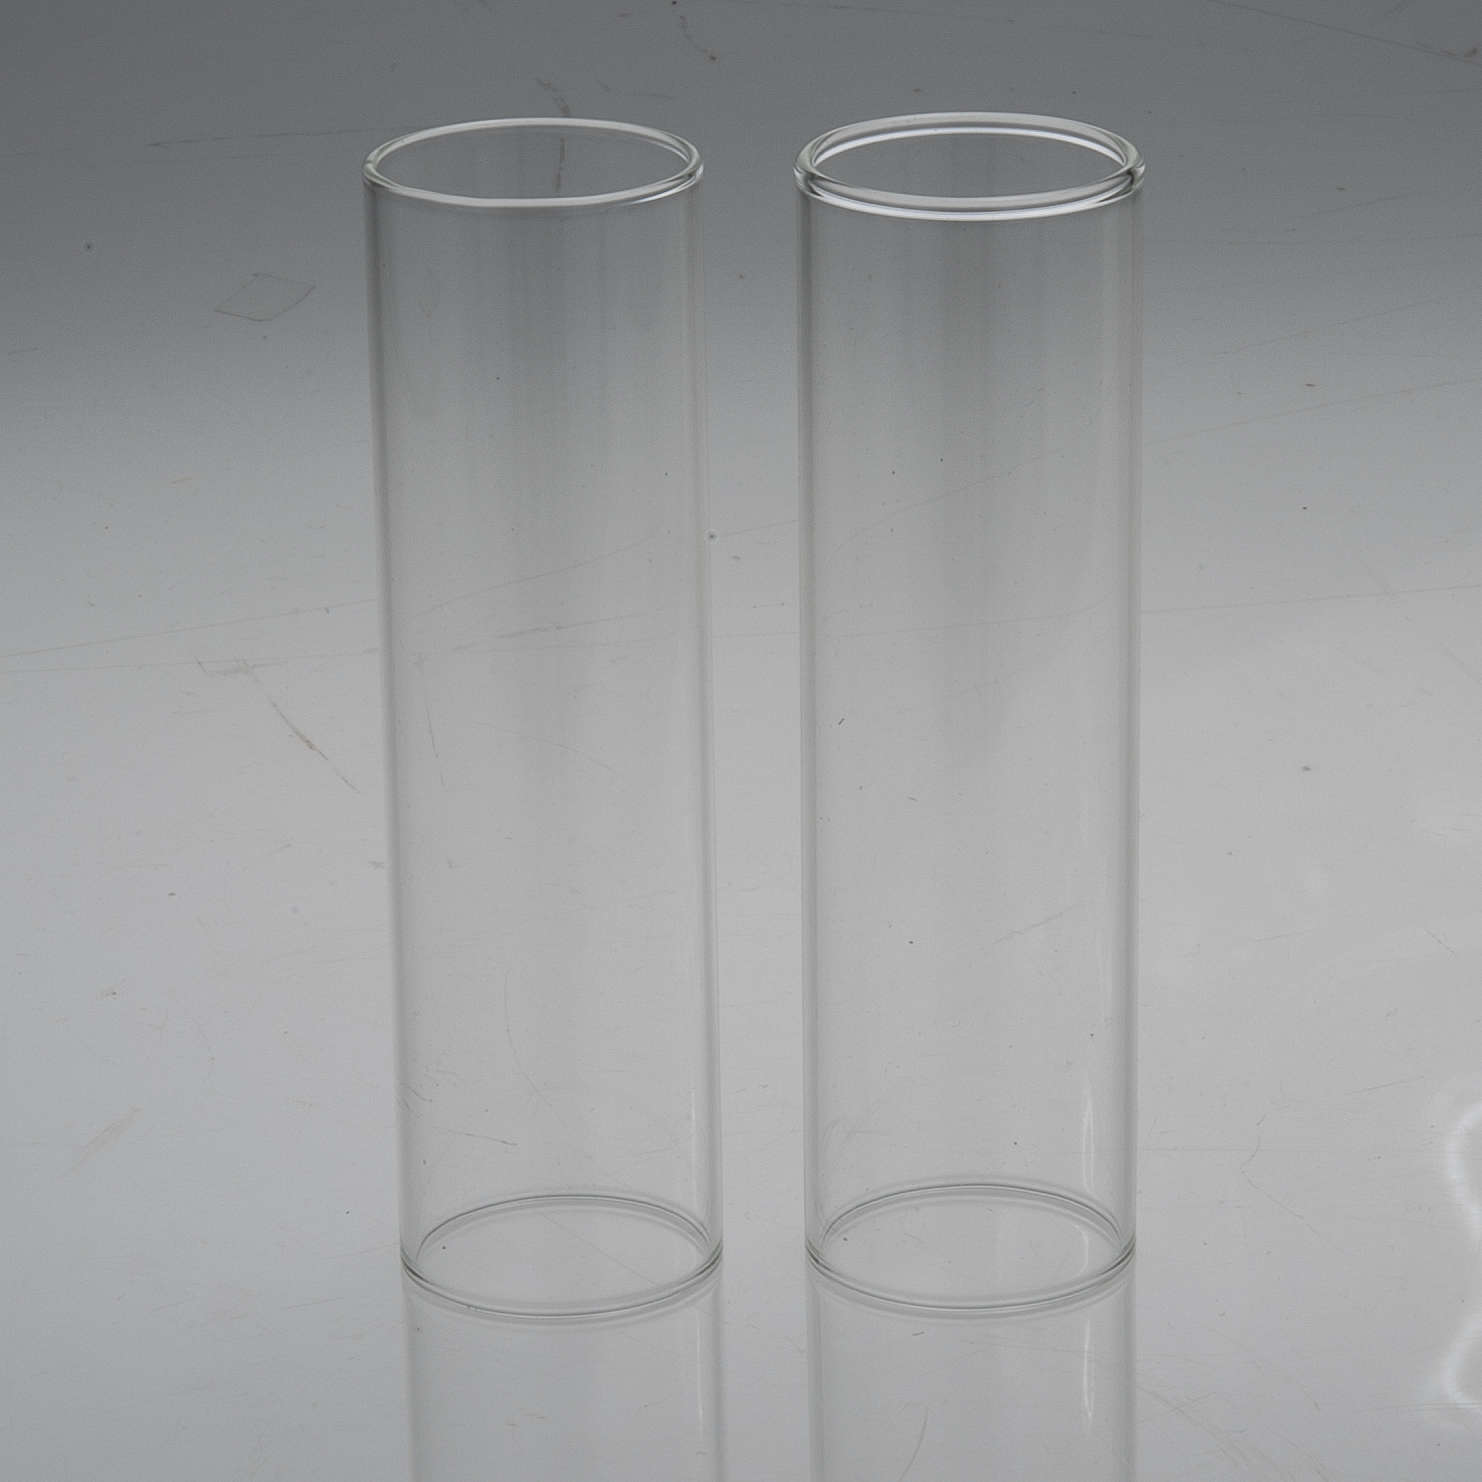 Wind-proof glass for candles, 2 pieces set. 3.5 cm diameter 3